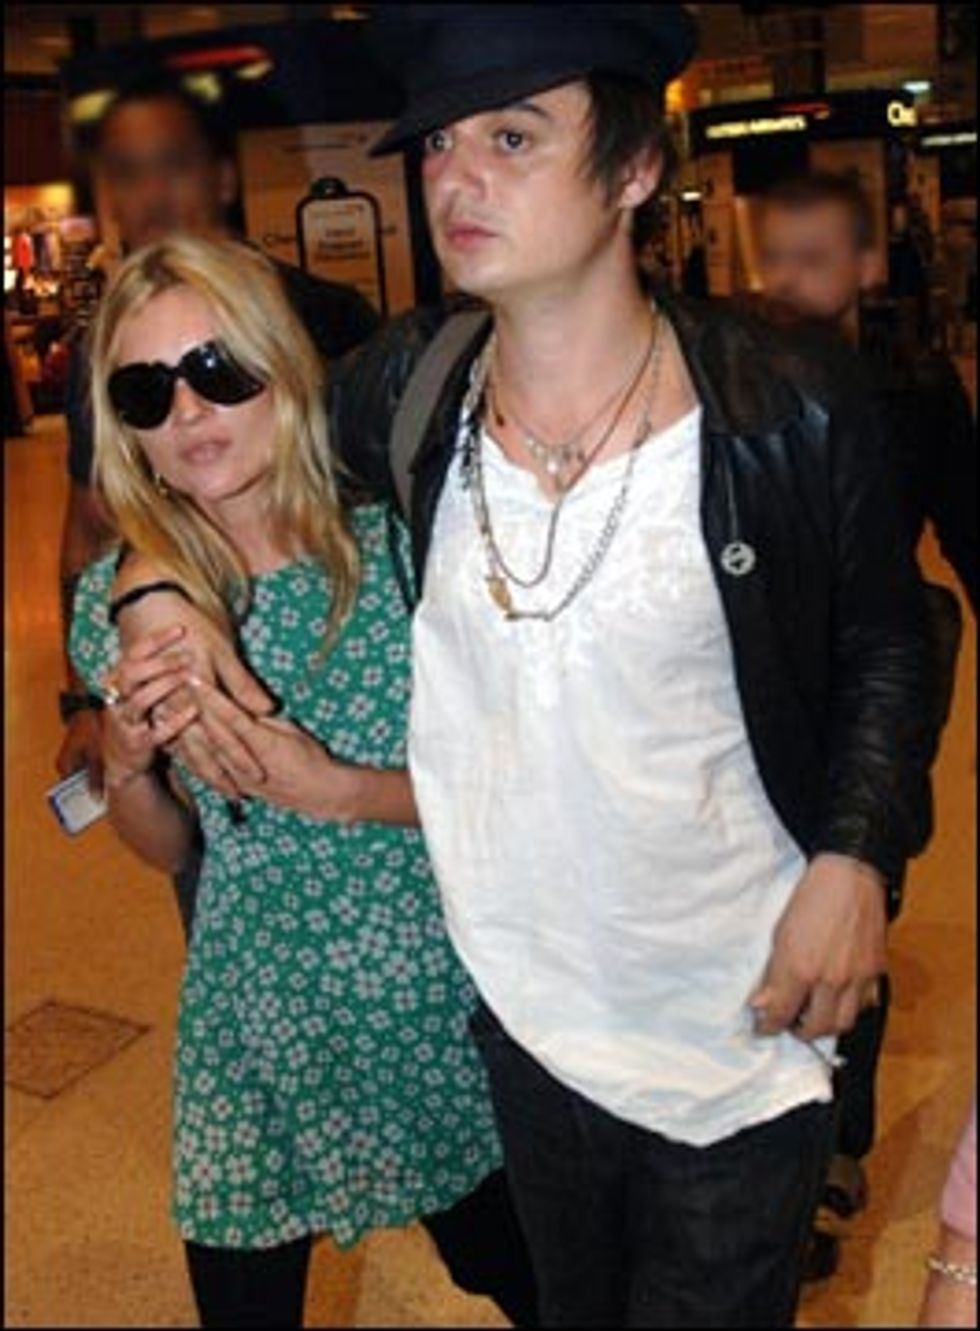 Kate Moss And Pete Doherty - At It Again!